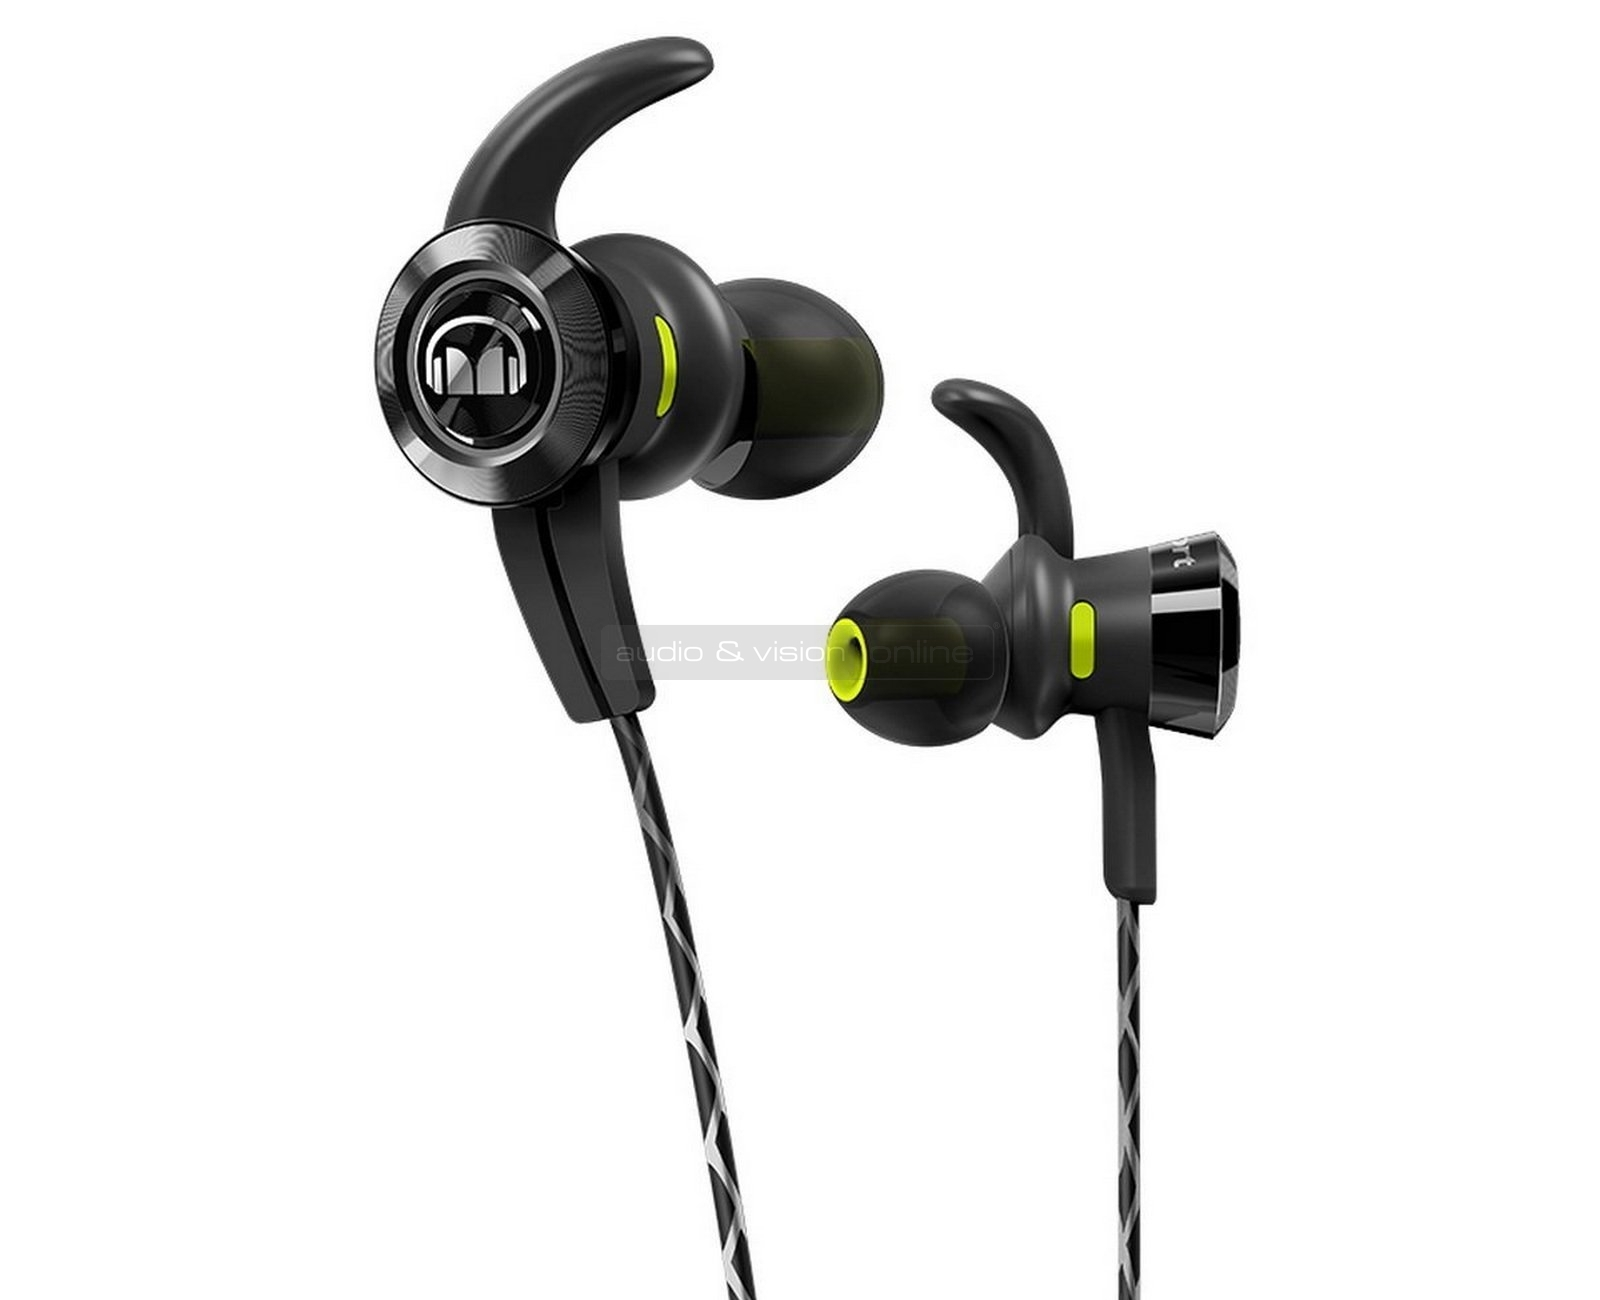 Monster iSport Intesity és iSport Victory Bluetooth sportfülhallgatók.  Kattints ... fc2945134e